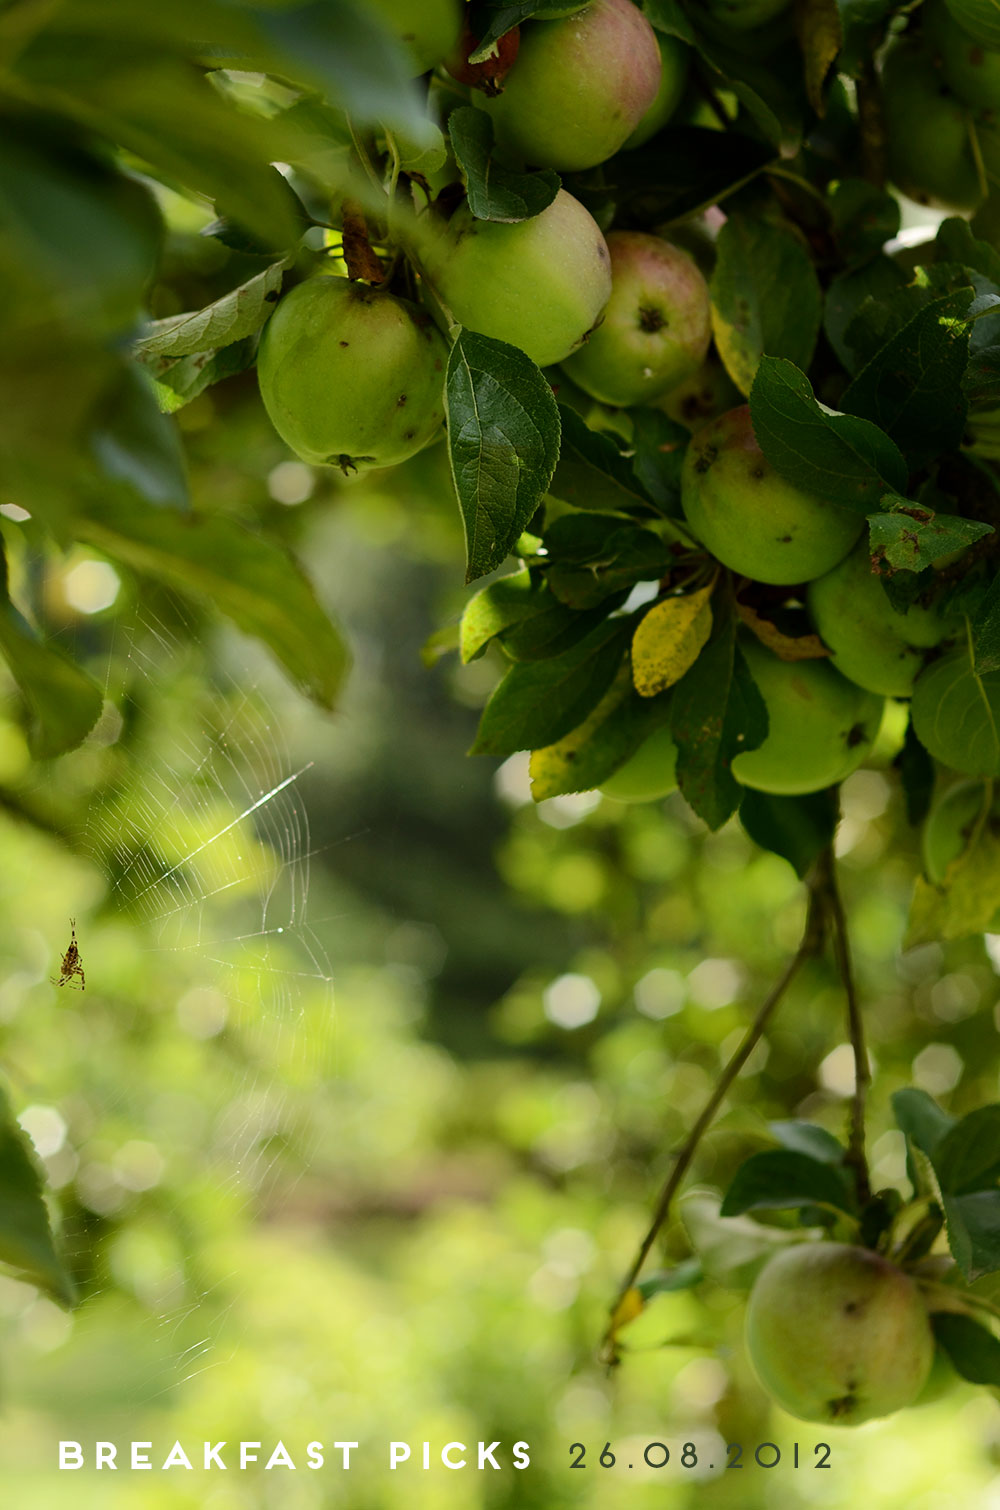 Augustäpfel / Apples in my grandmother's garden